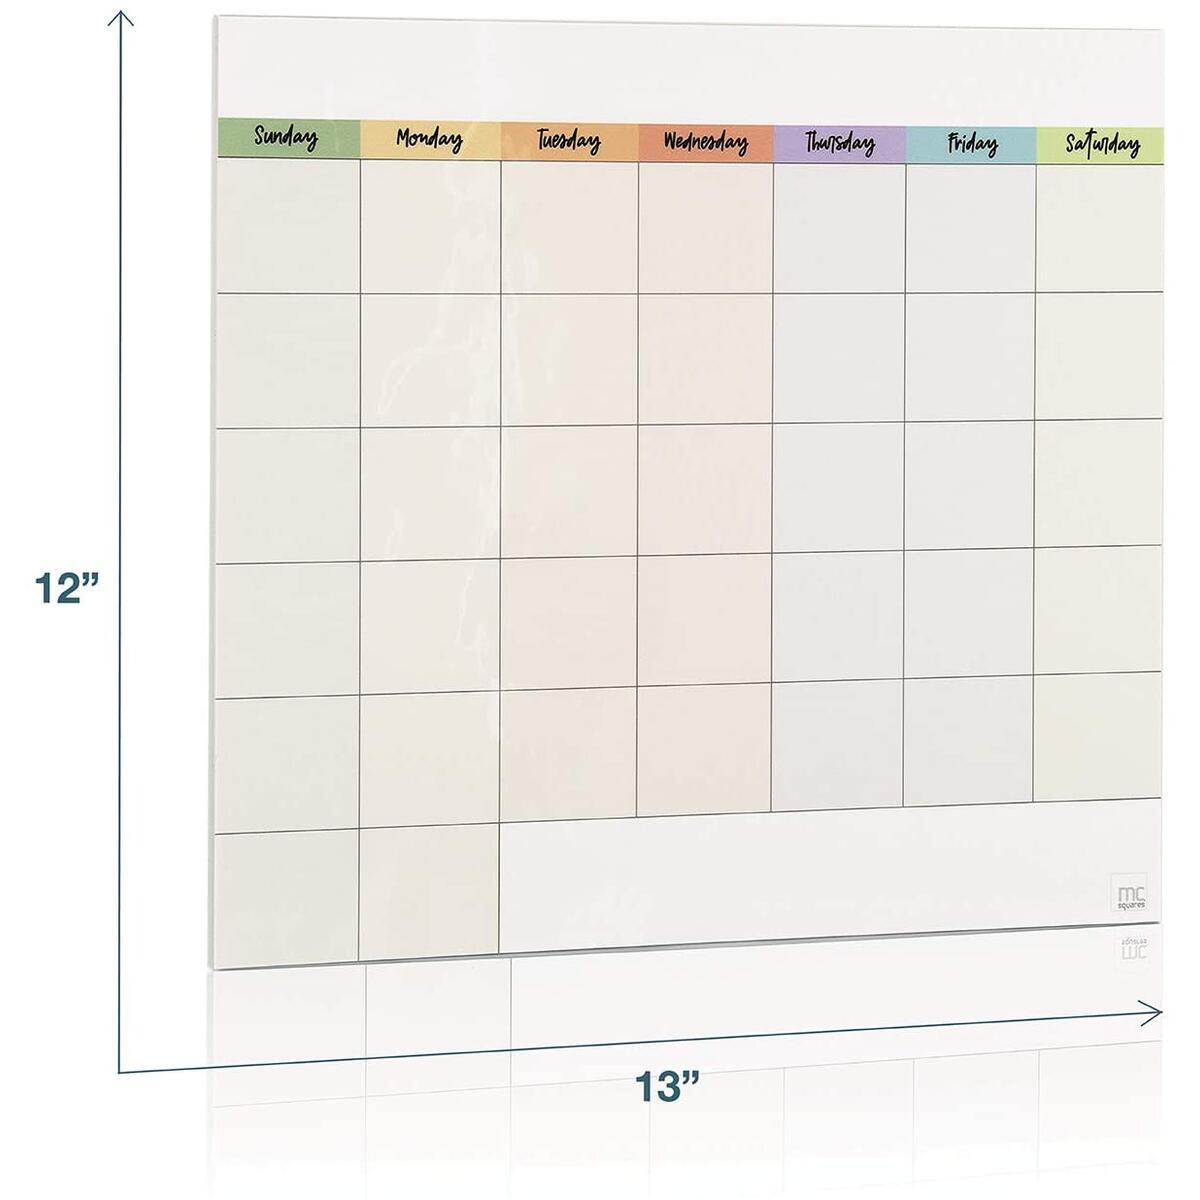 mcSquares Stickies Dry-Erase Bright Calendar with Tackie Marker - Sticks to Stainless Steel (Any Shiny Surface) - 12x13 Monthly Wipe Off Whiteboard for Refrigerator, Mirror, Desk, and Glass…